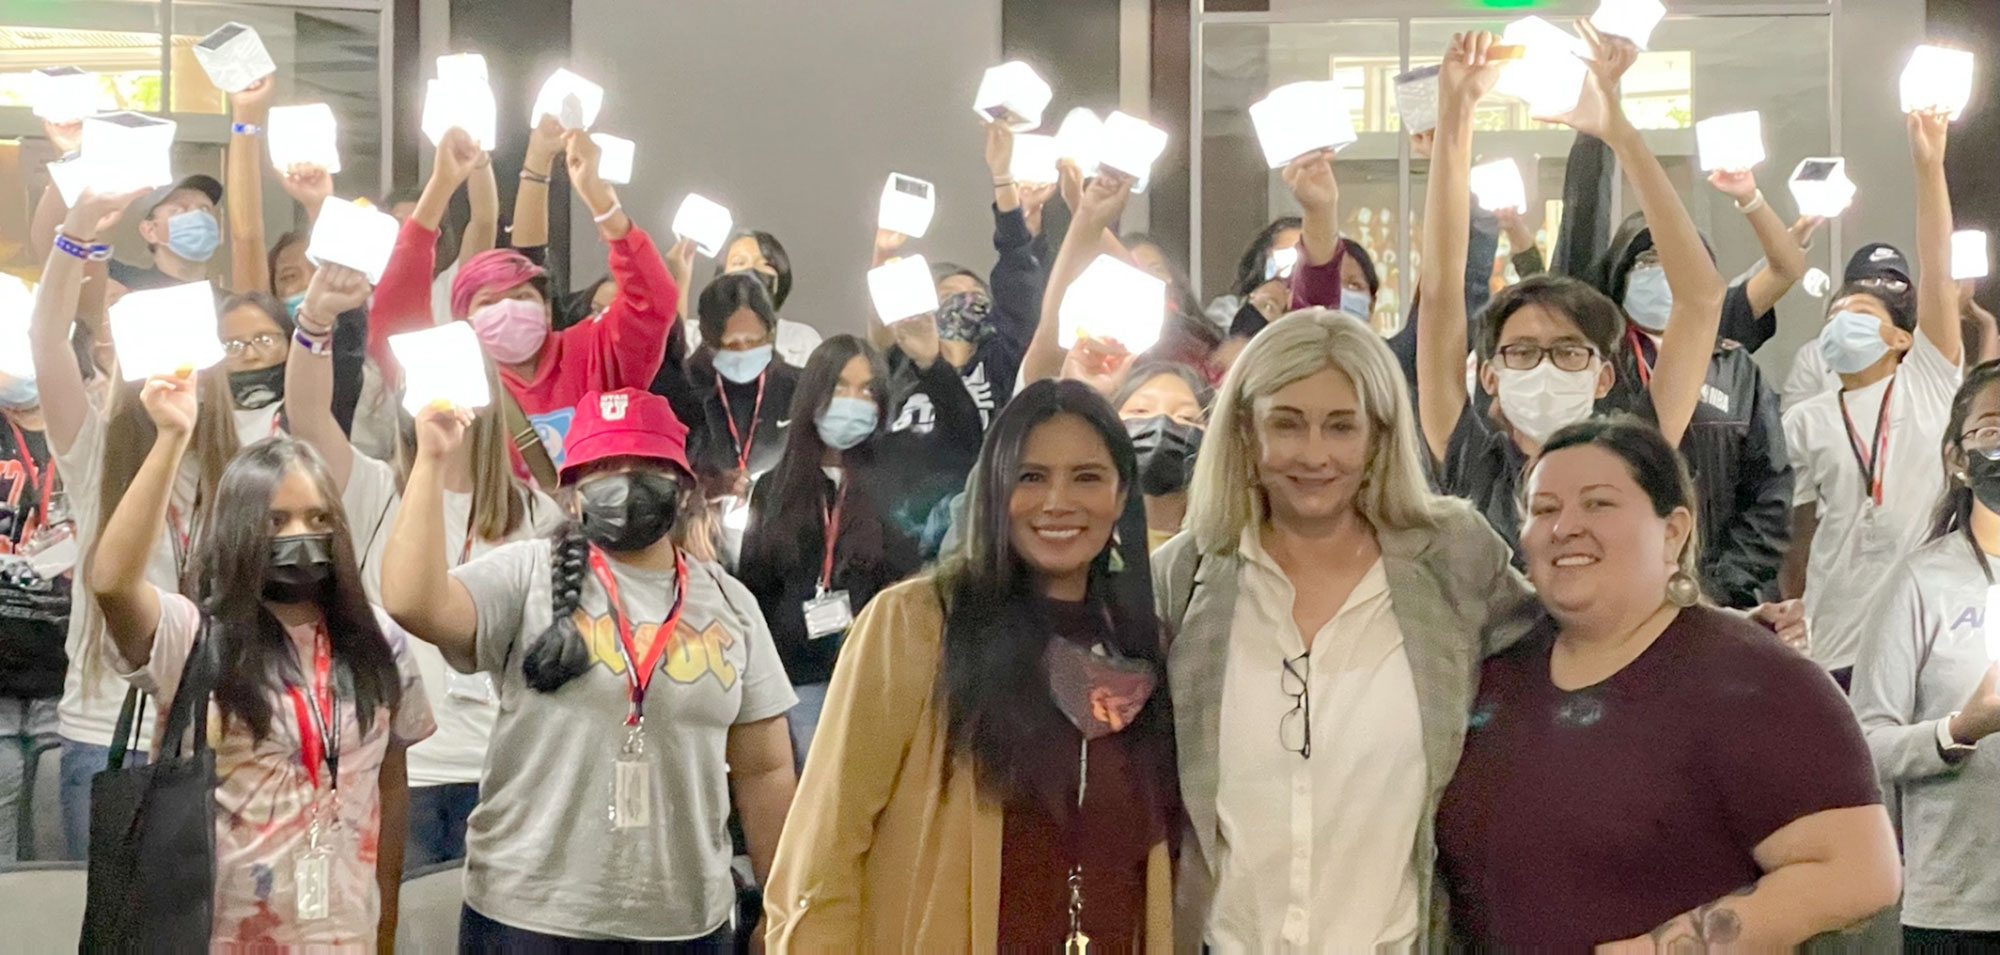 Three women stand in front of dozens of students who hold up illuminated cube lights in the background.